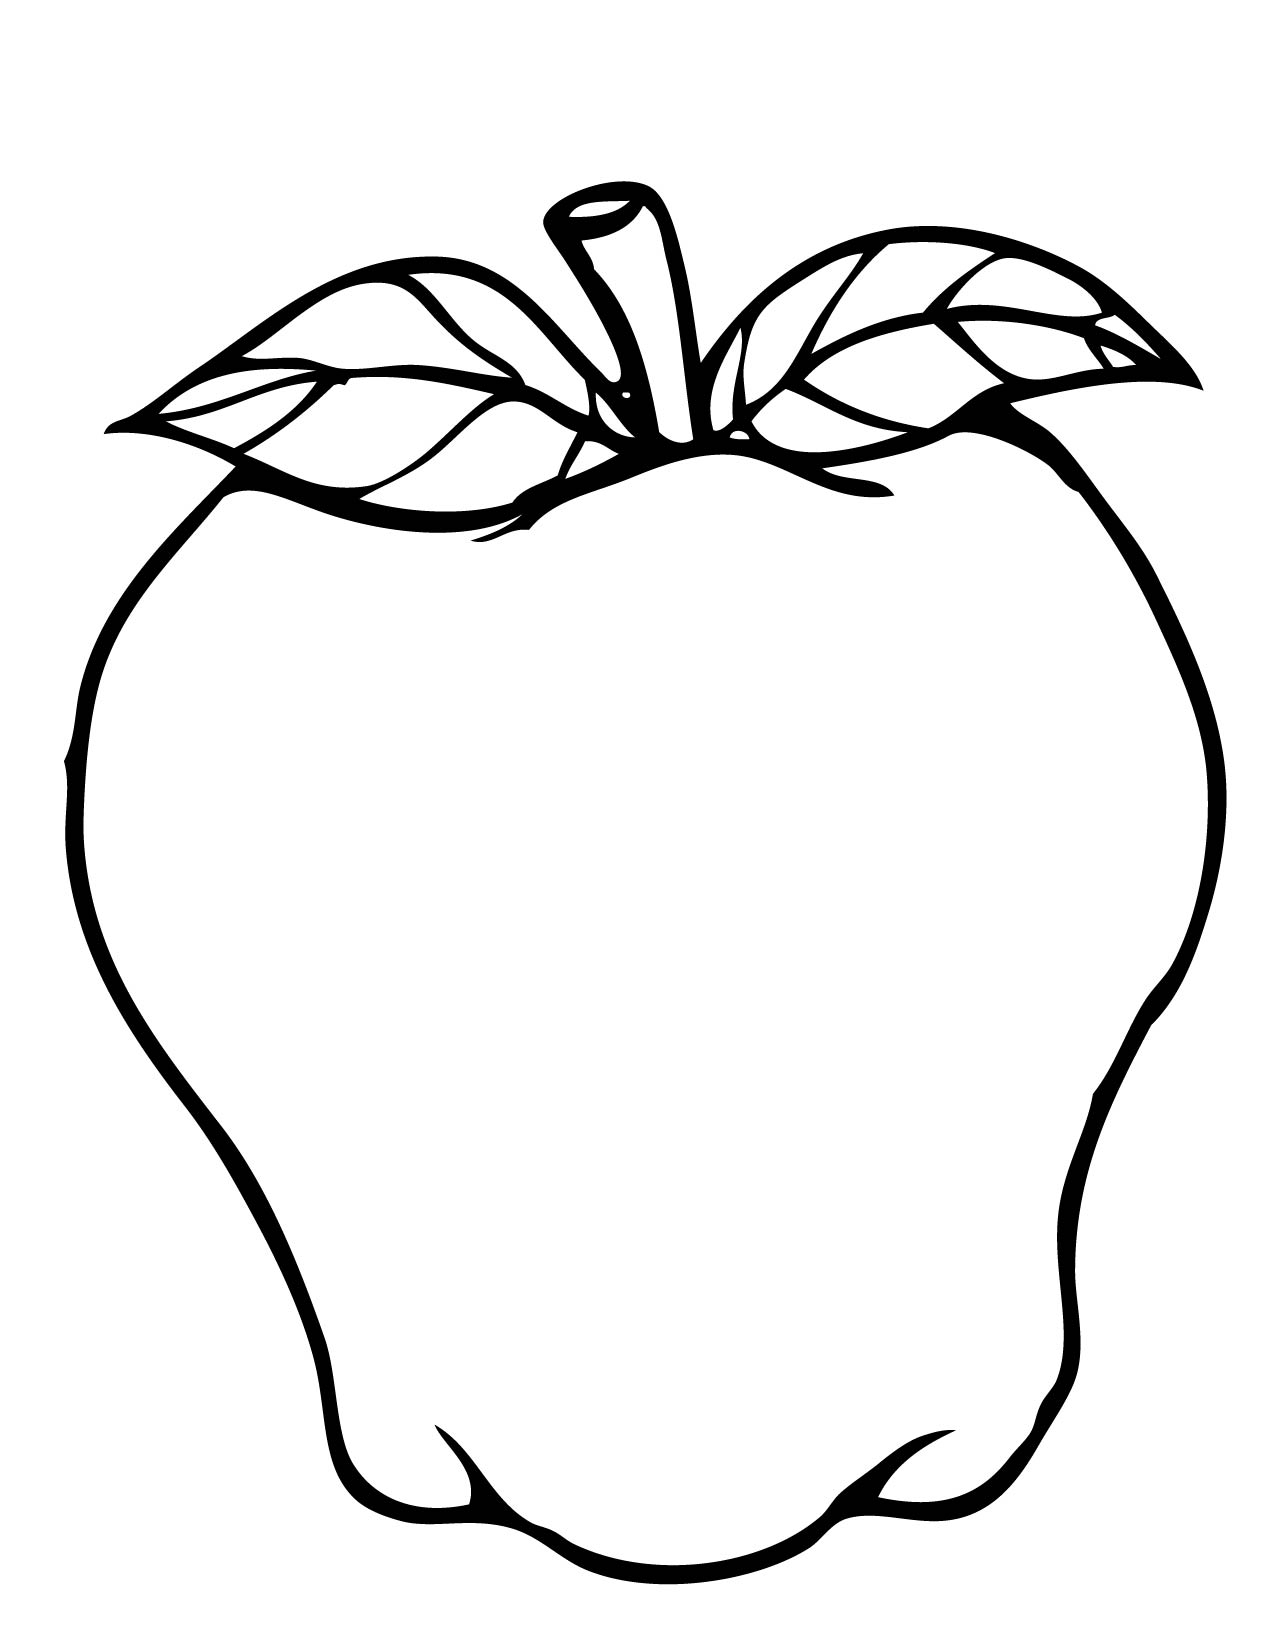 apple for coloring apple coloring pages fotolipcom rich image and wallpaper for apple coloring